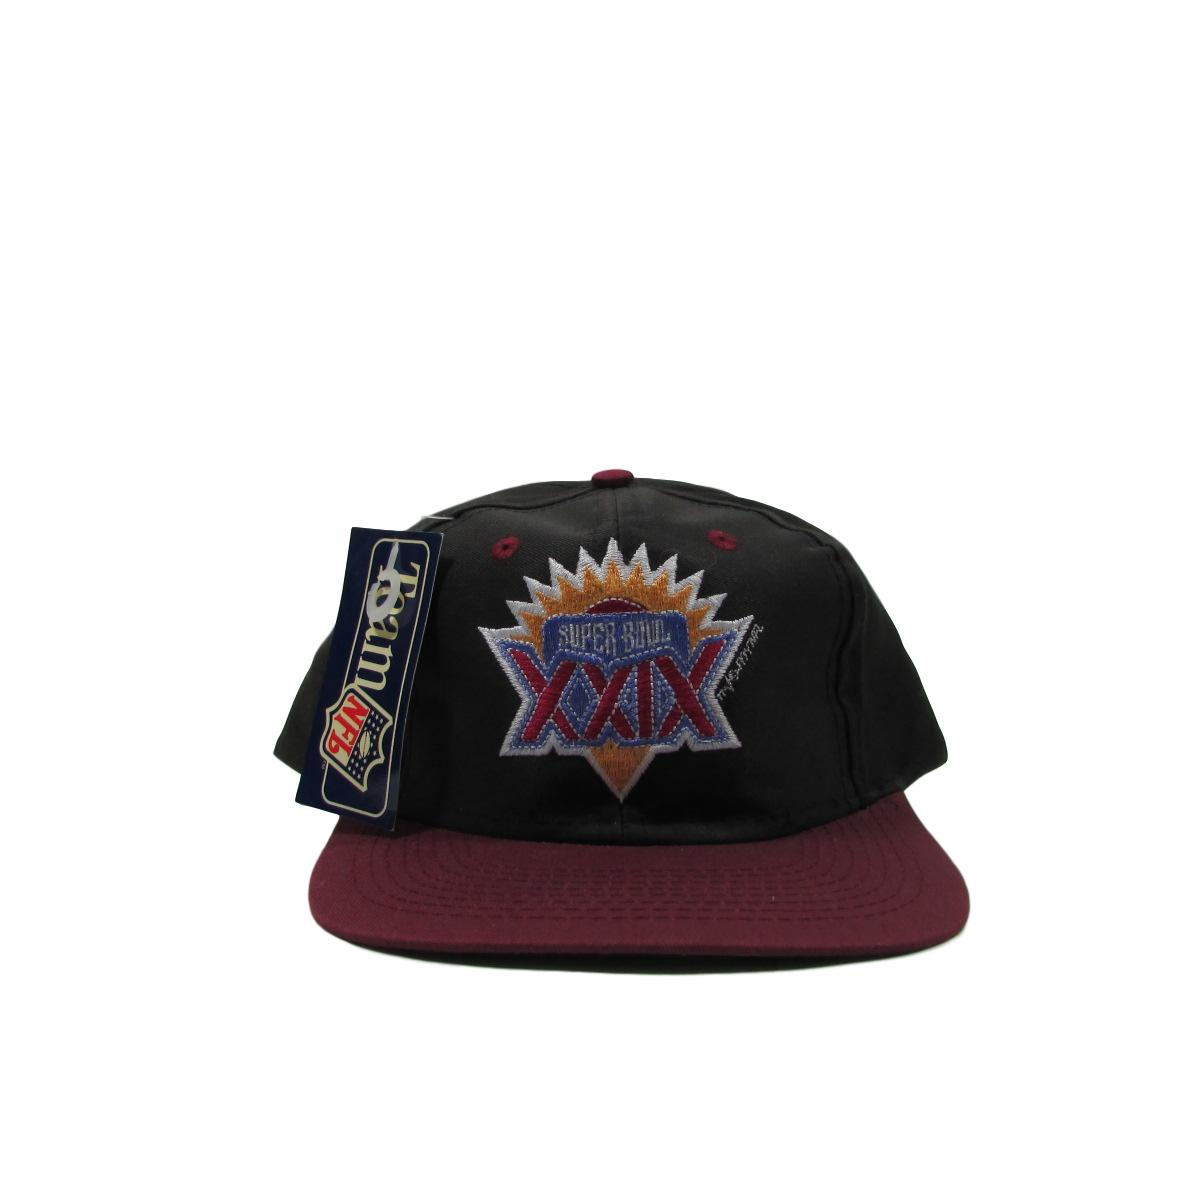 Superbowl XXIX Deadstock Snapback Hat Team NFL Chargers 49ers 1995